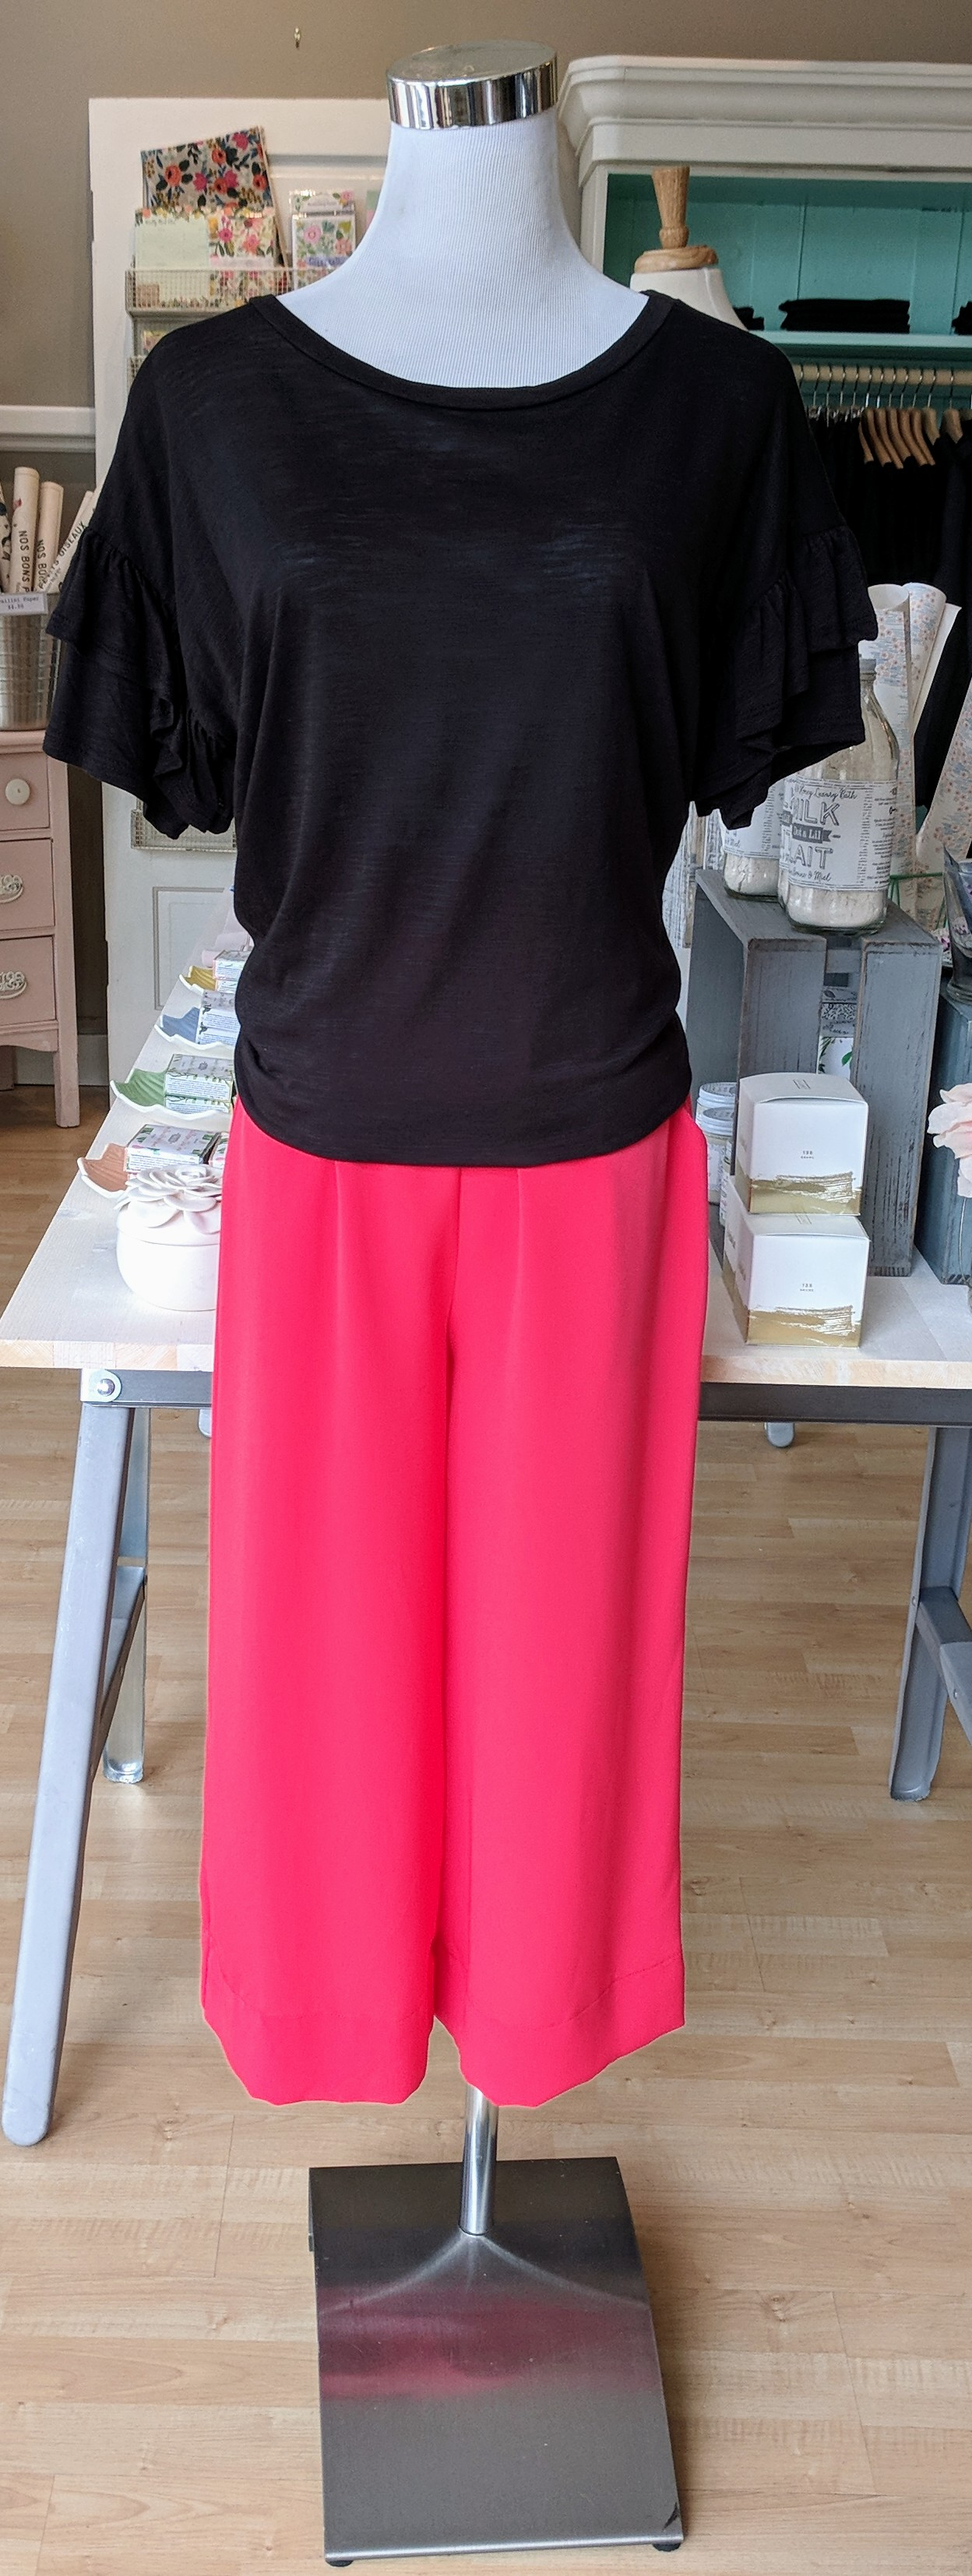 Coral Culotte pant with Black ruffle sleeve top.